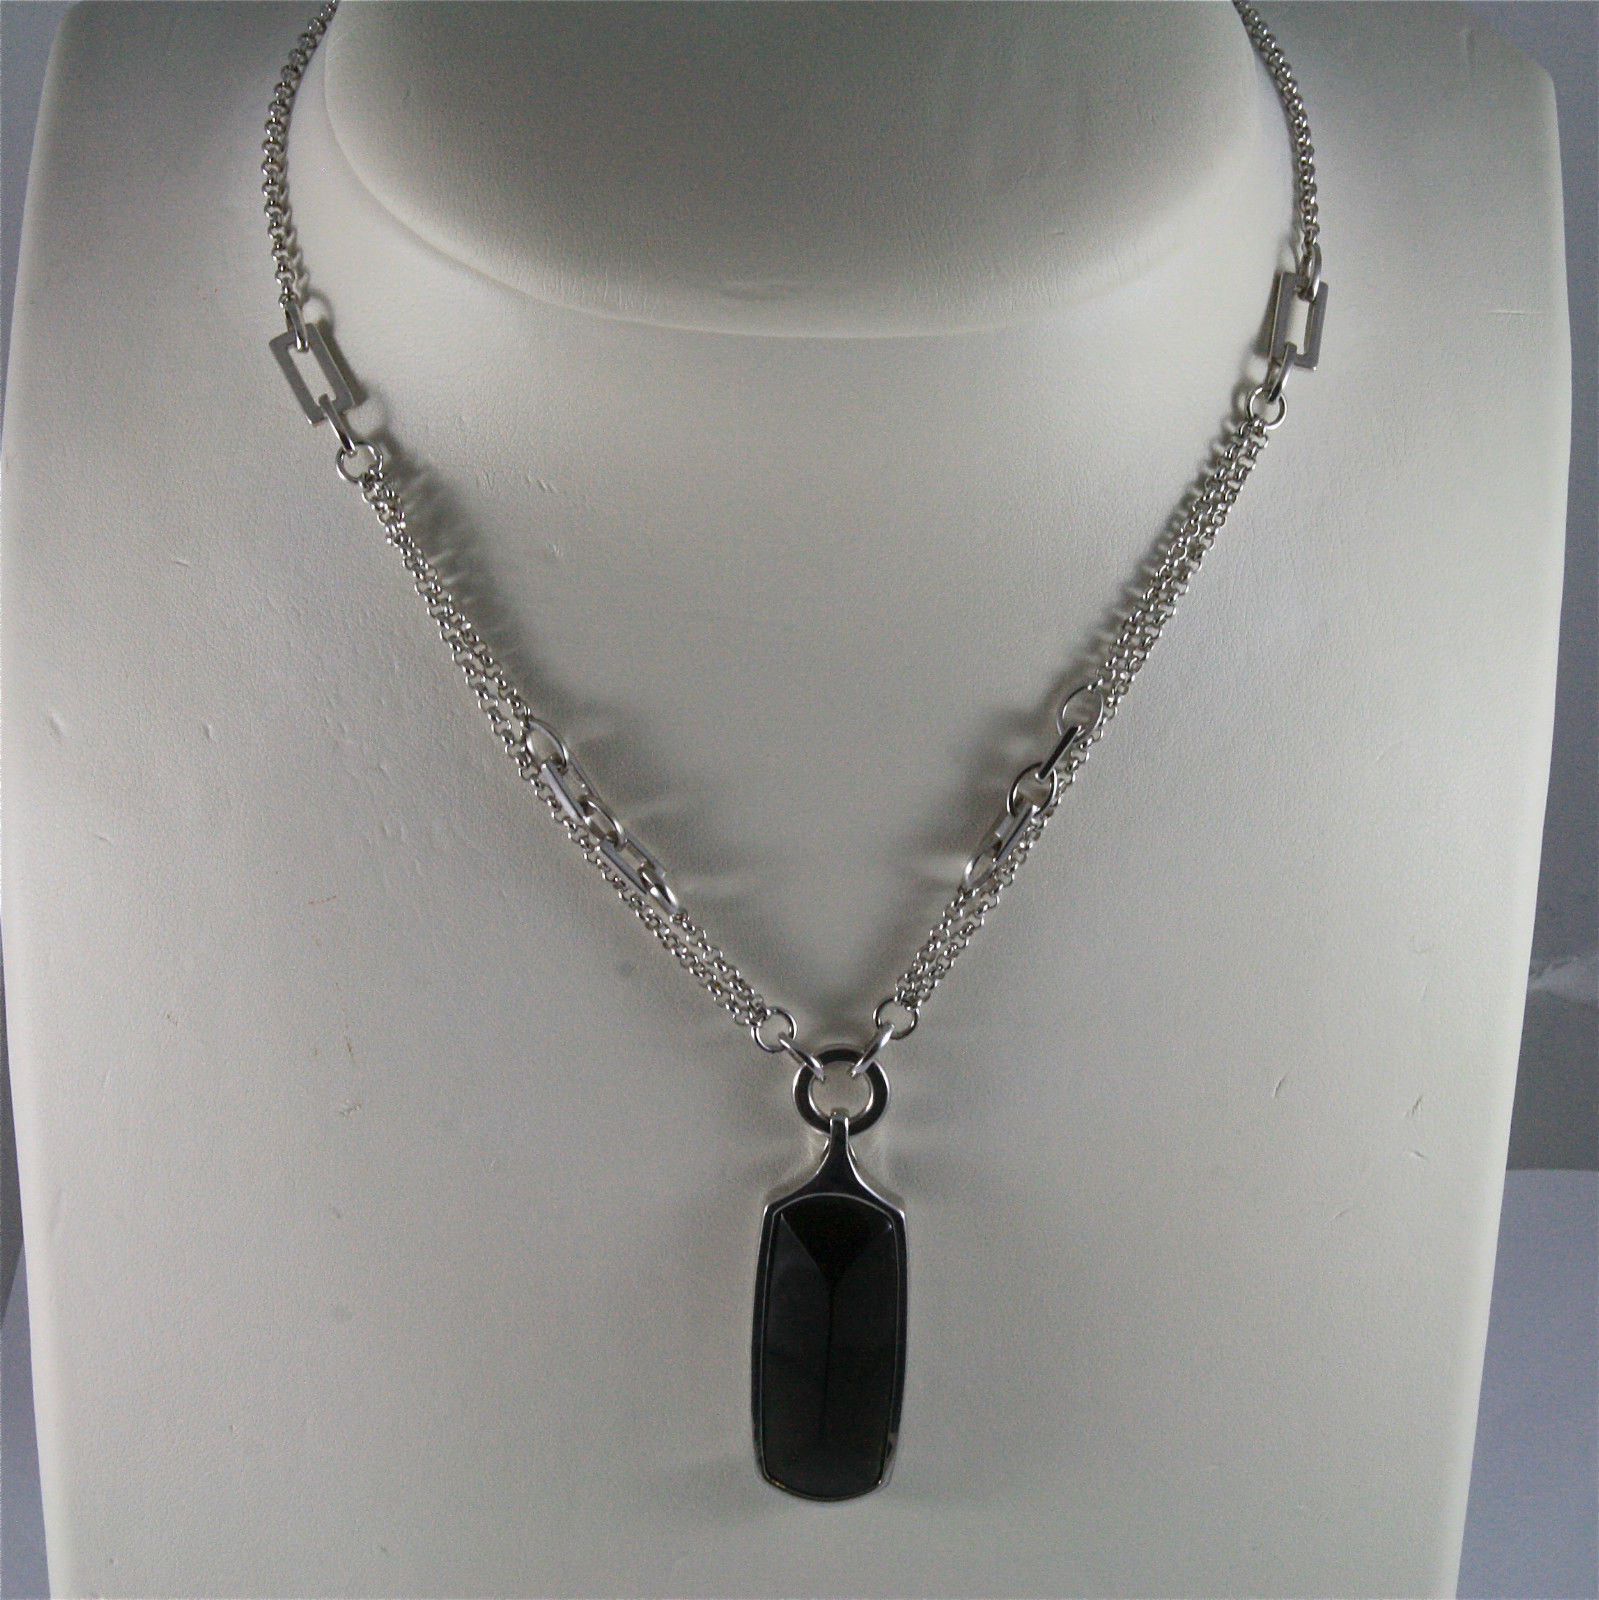 .925 SILVER RHODIUM NECKLACE, 17,72 In, DOUBLE CHAIN, SMOKING QUARTZ PENDANT.